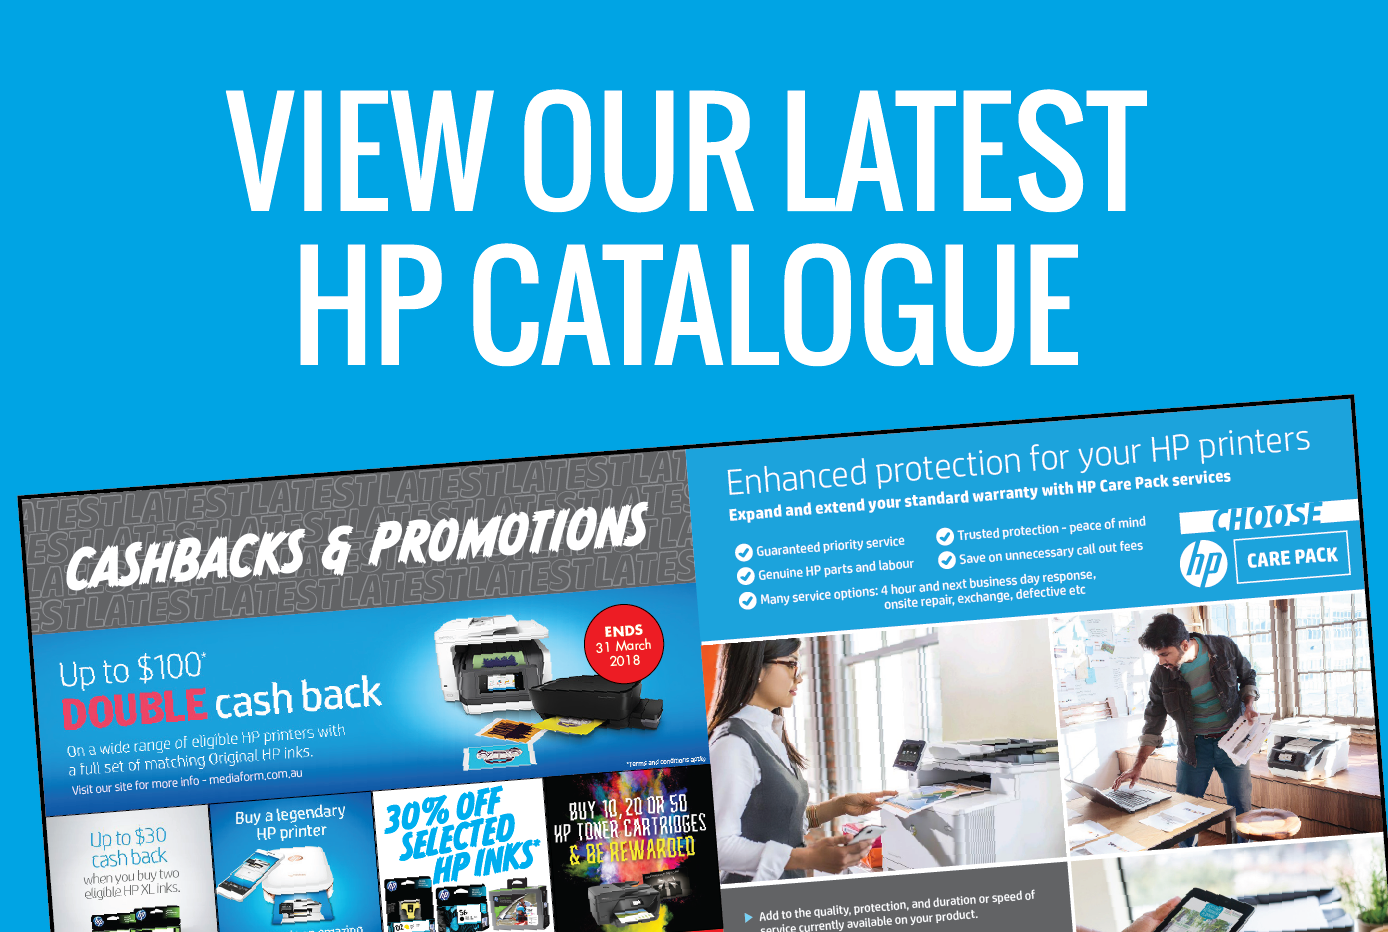 View our latest HP catalogue